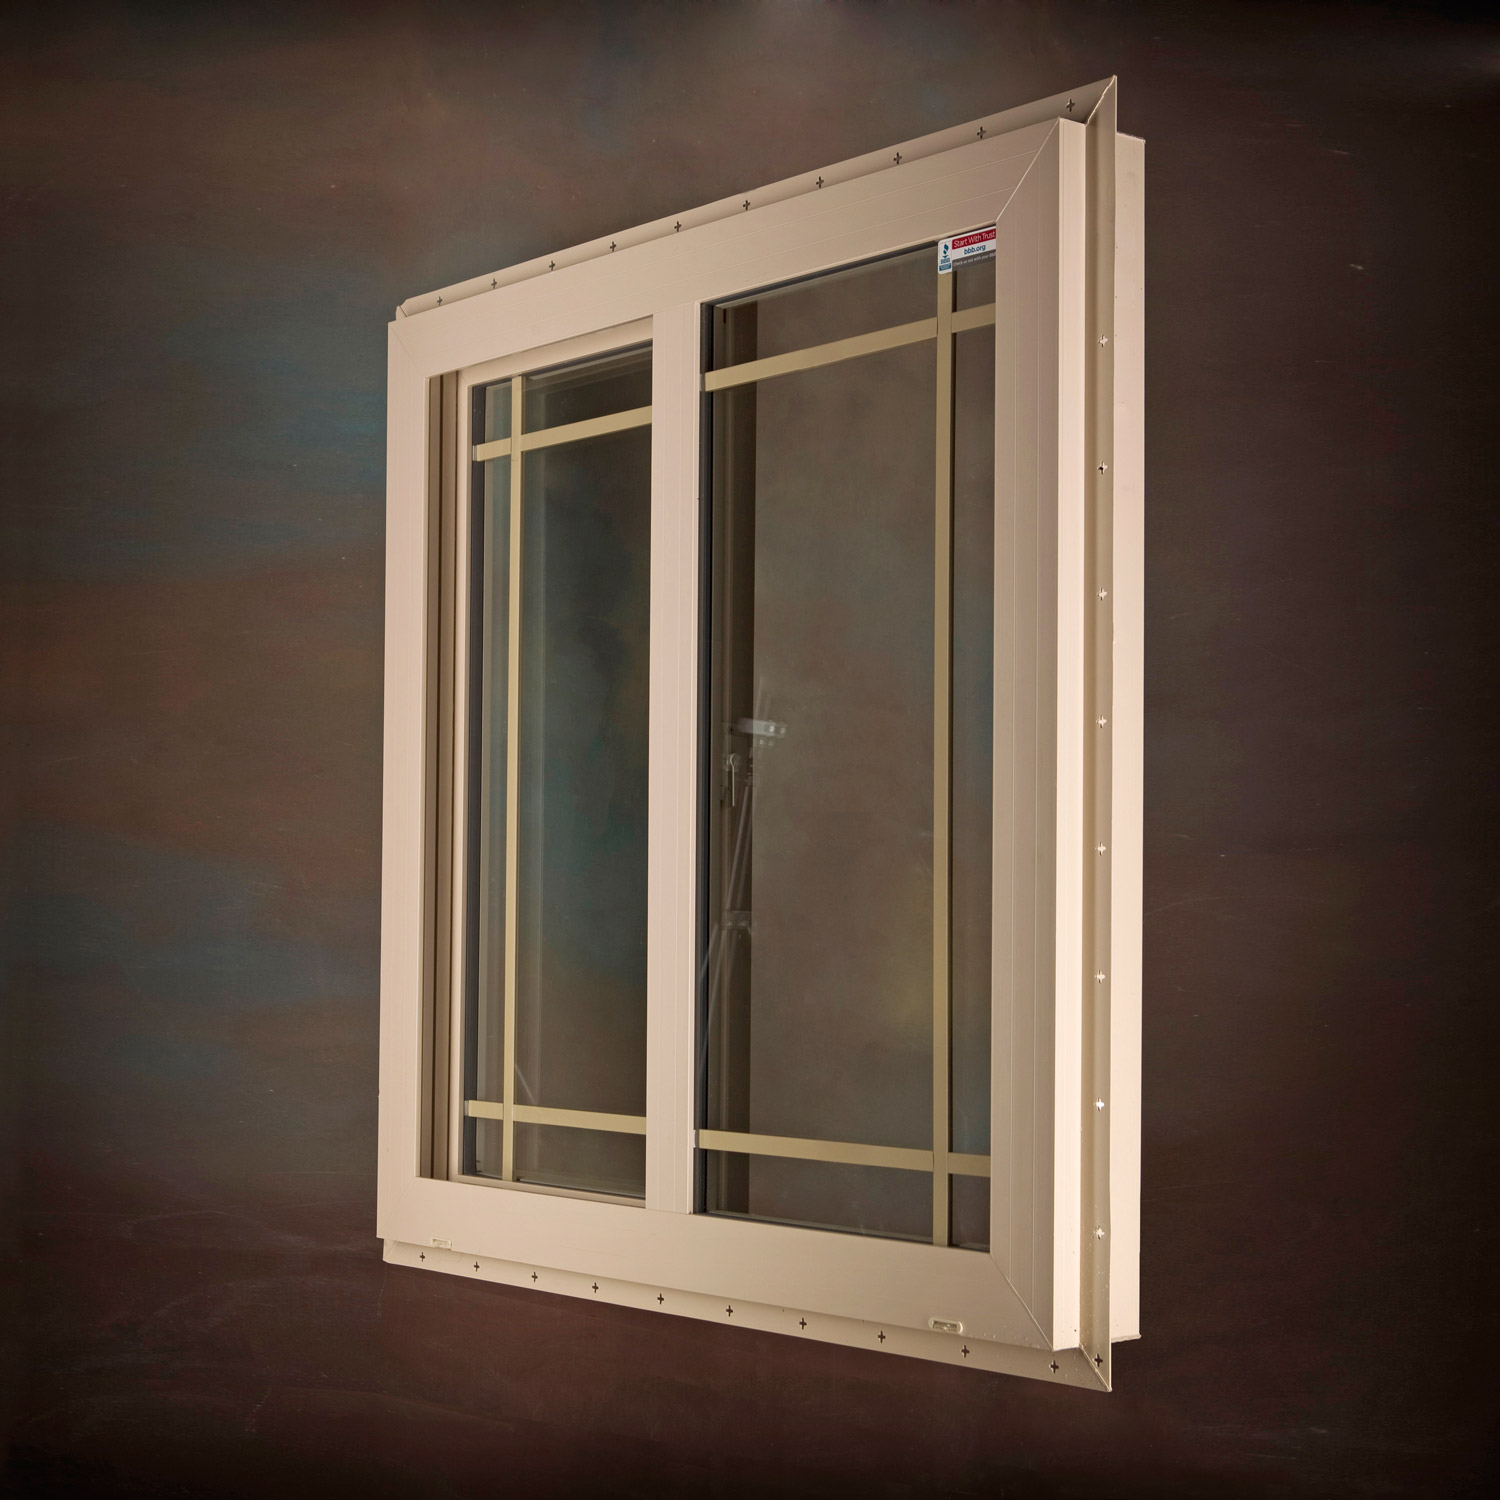 vinyl window options modern windows building